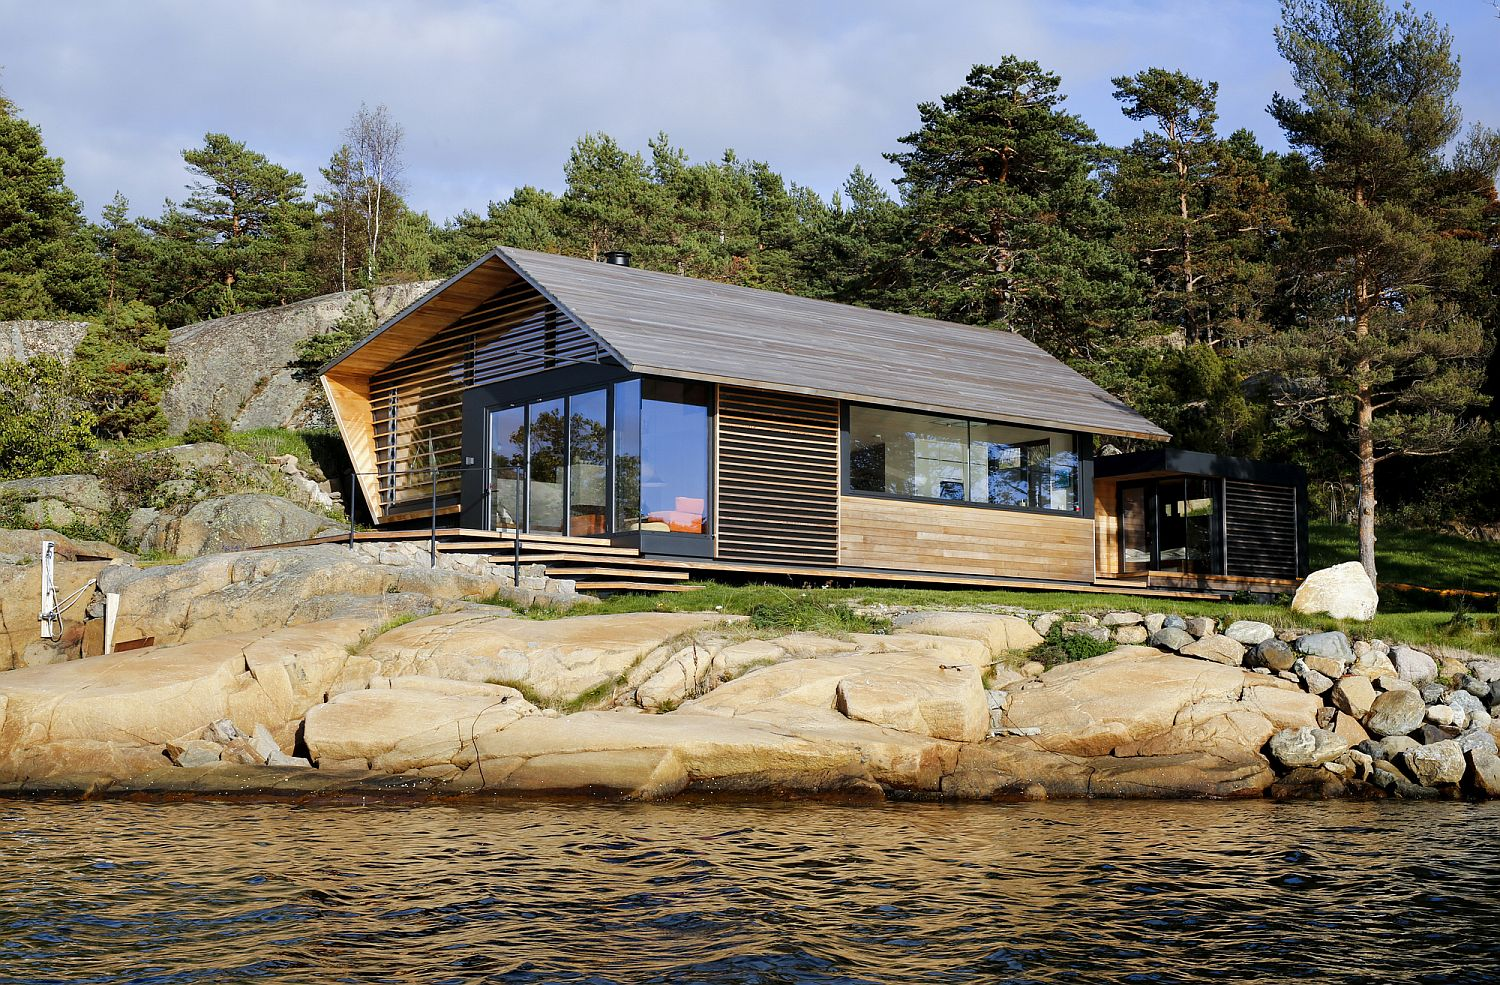 Gorgeous glass and timber cabin in Oslofjord, Norway